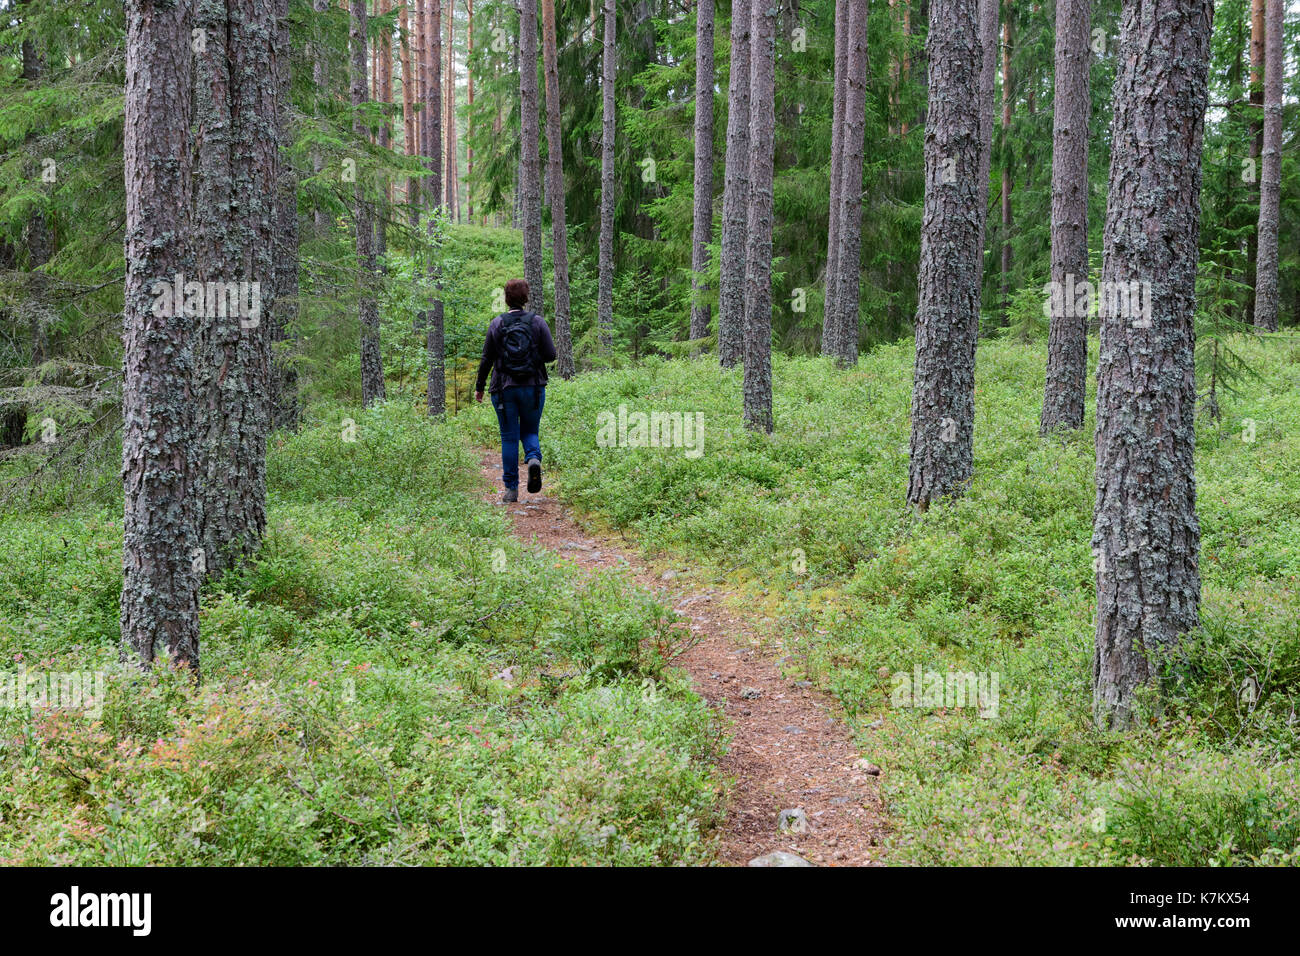 One woman hiking on a forest trail in Sweden - Stock Image